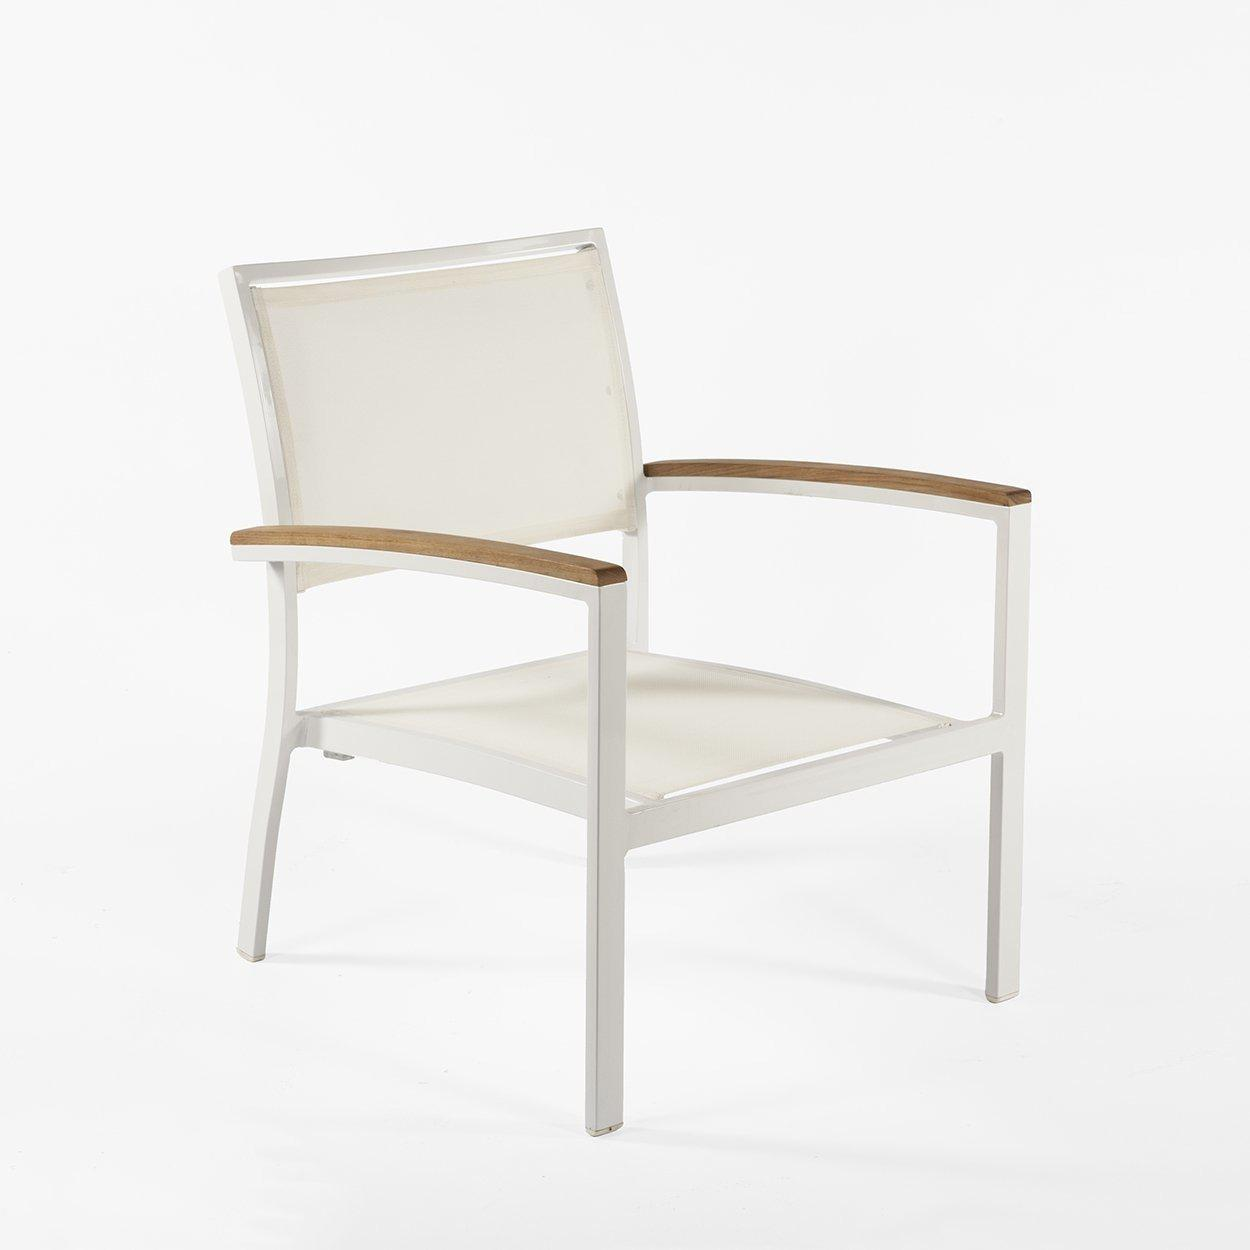 [FCC0210WHT] Flevoland lounge chair